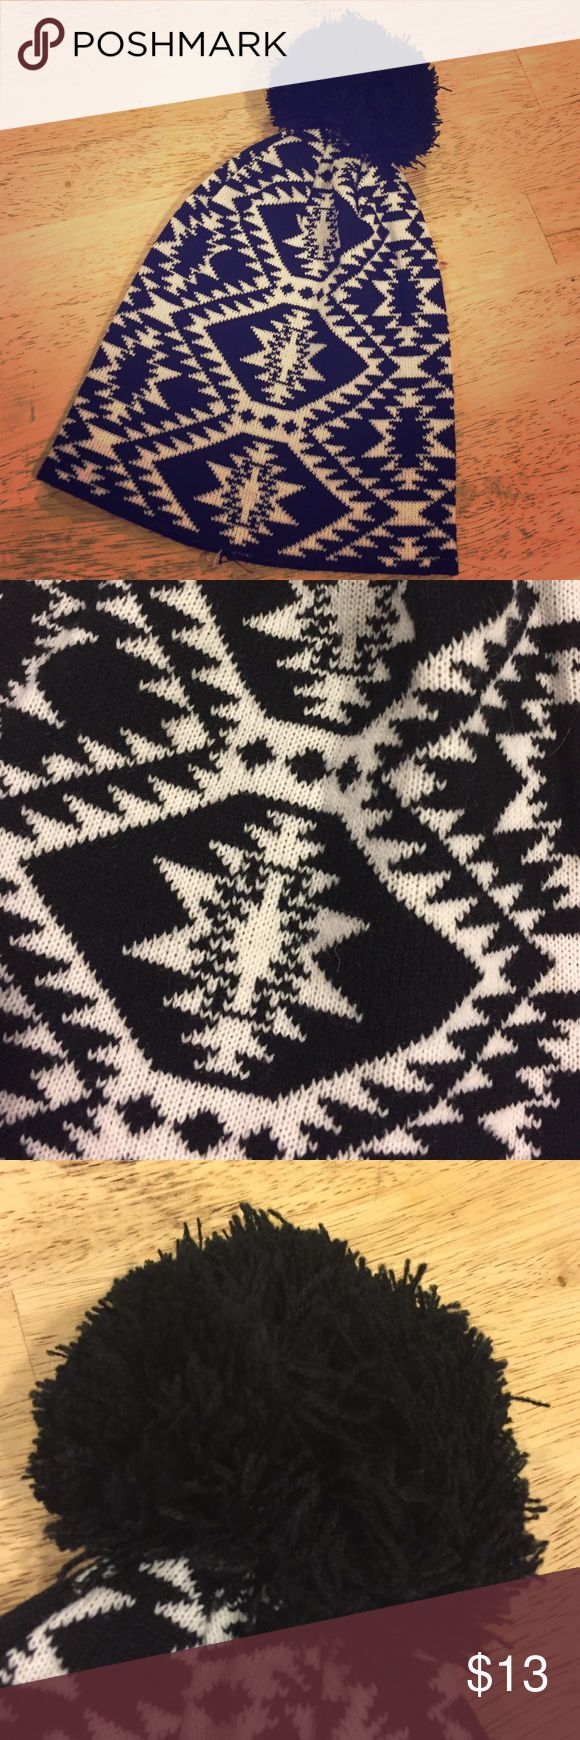 Black and white beanie Super cute and warm! Perfect for winter! I never wore it so it's in perfect condition! From rue 21! 💕 Rue 21 Accessories Hats